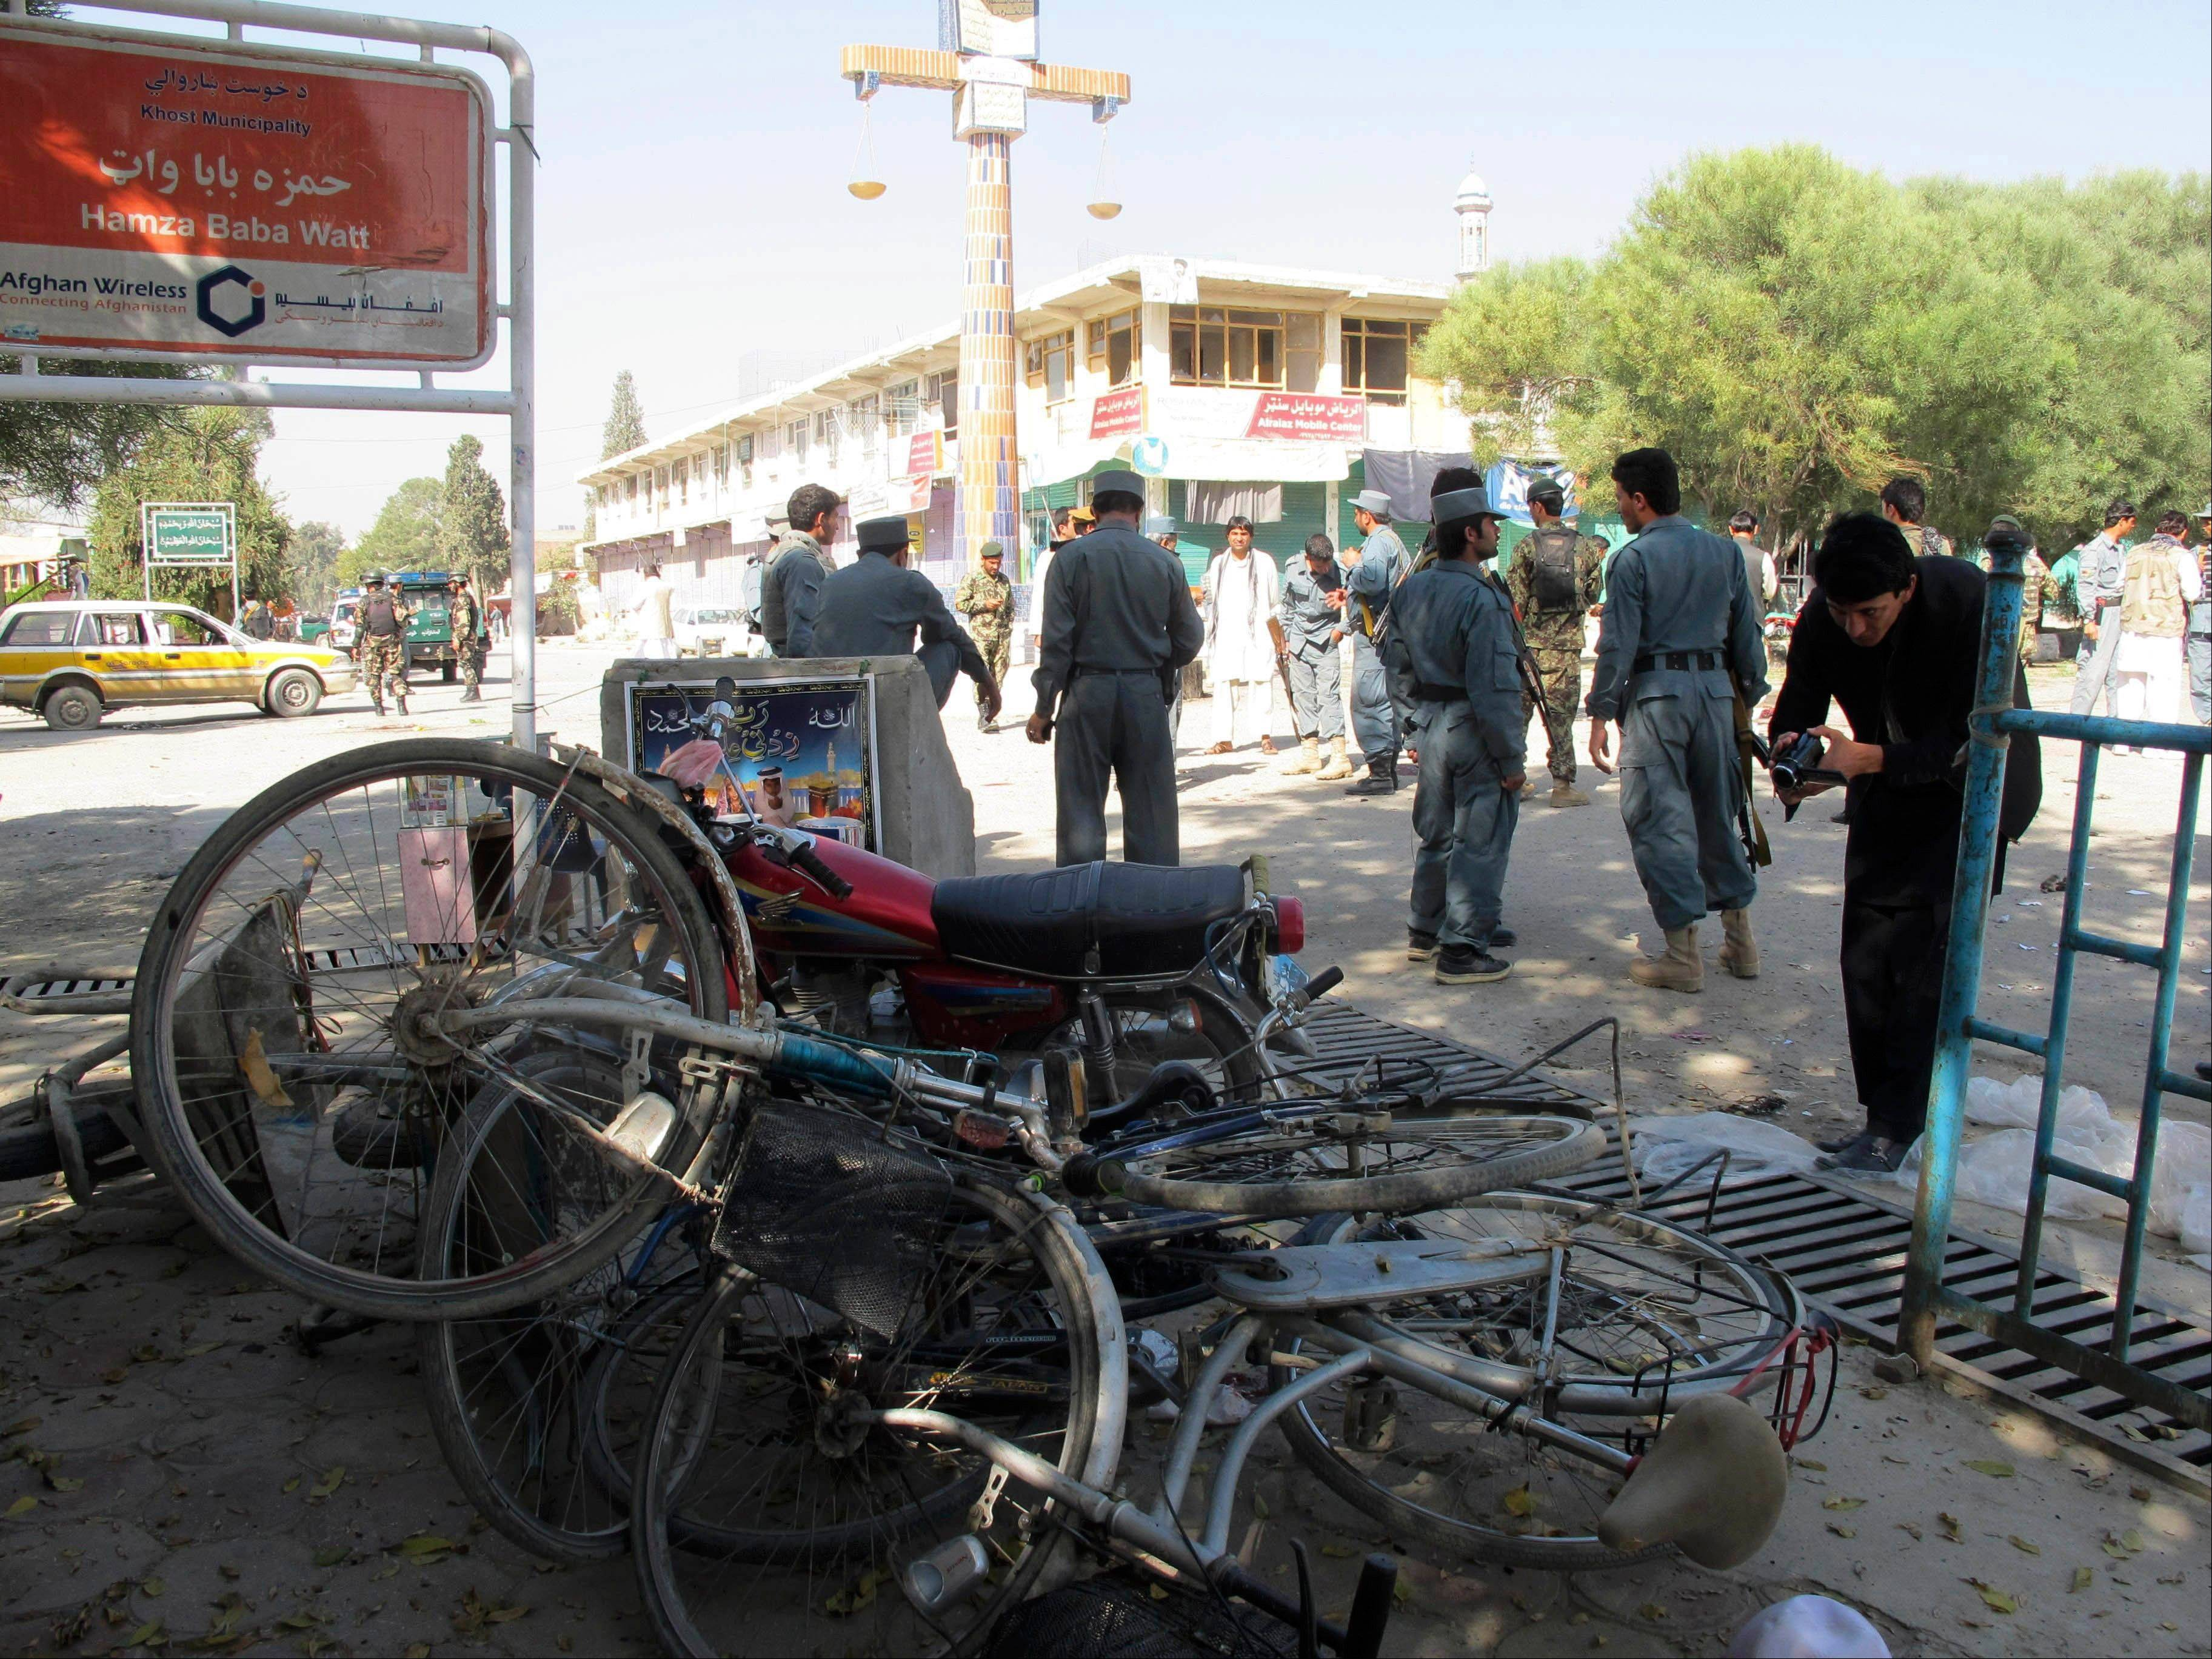 Afghan police secure the site of a suicide bombing in Khost, south of Kabul, Afghanistan, Monday. The suicide bomber was driving a motorcycle packed with explosives and rammed it into a patrol of Afghan and international forces, killing over a dozen people, including three NATO service members and their translator, an official said.